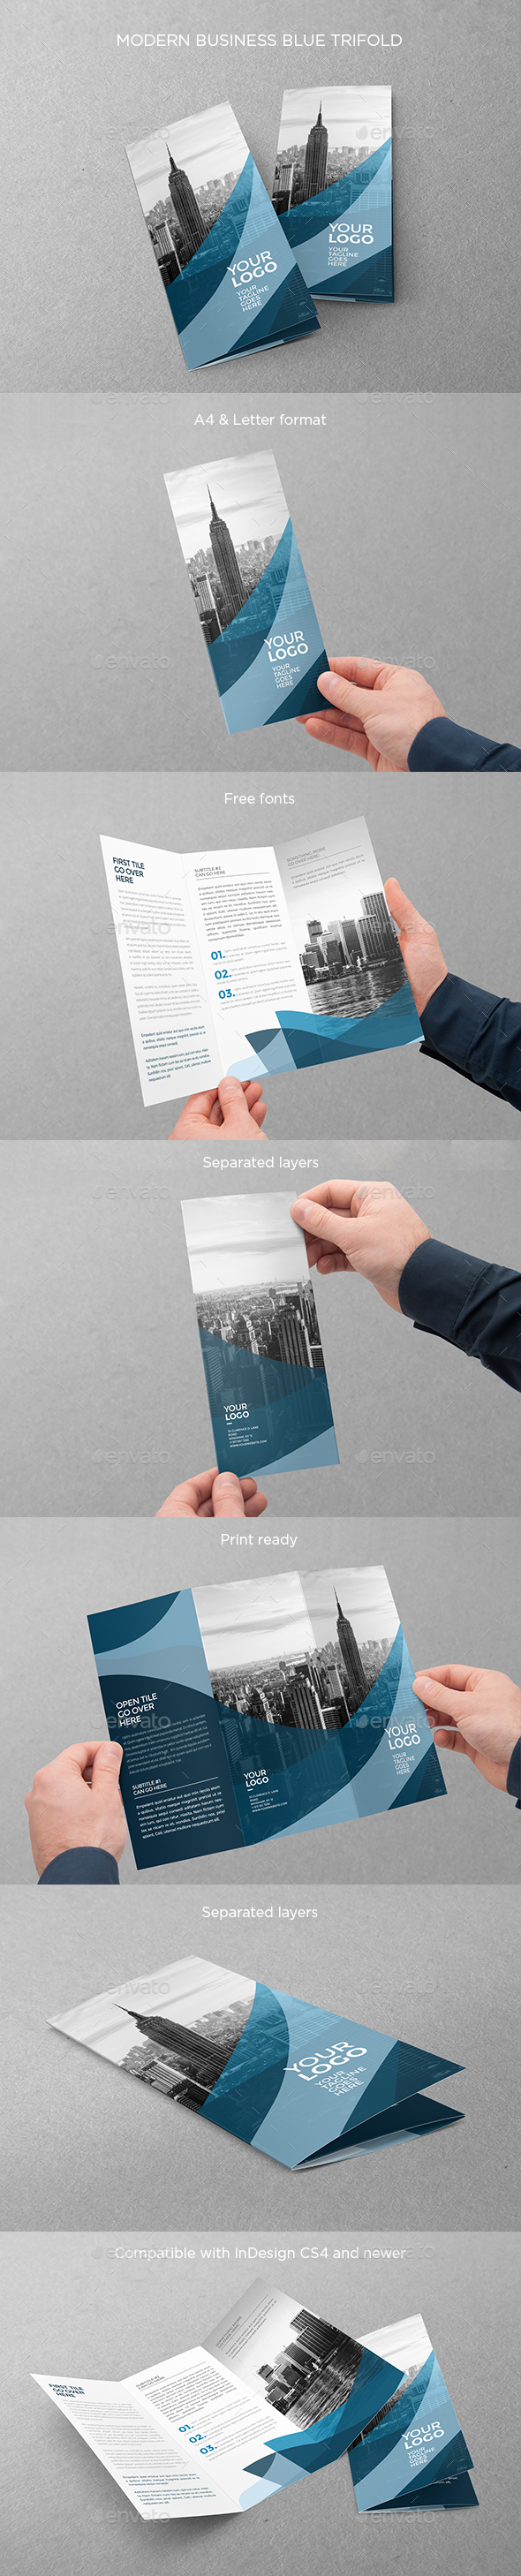 Modern Business Blue Trifold - Brochures Print Templates